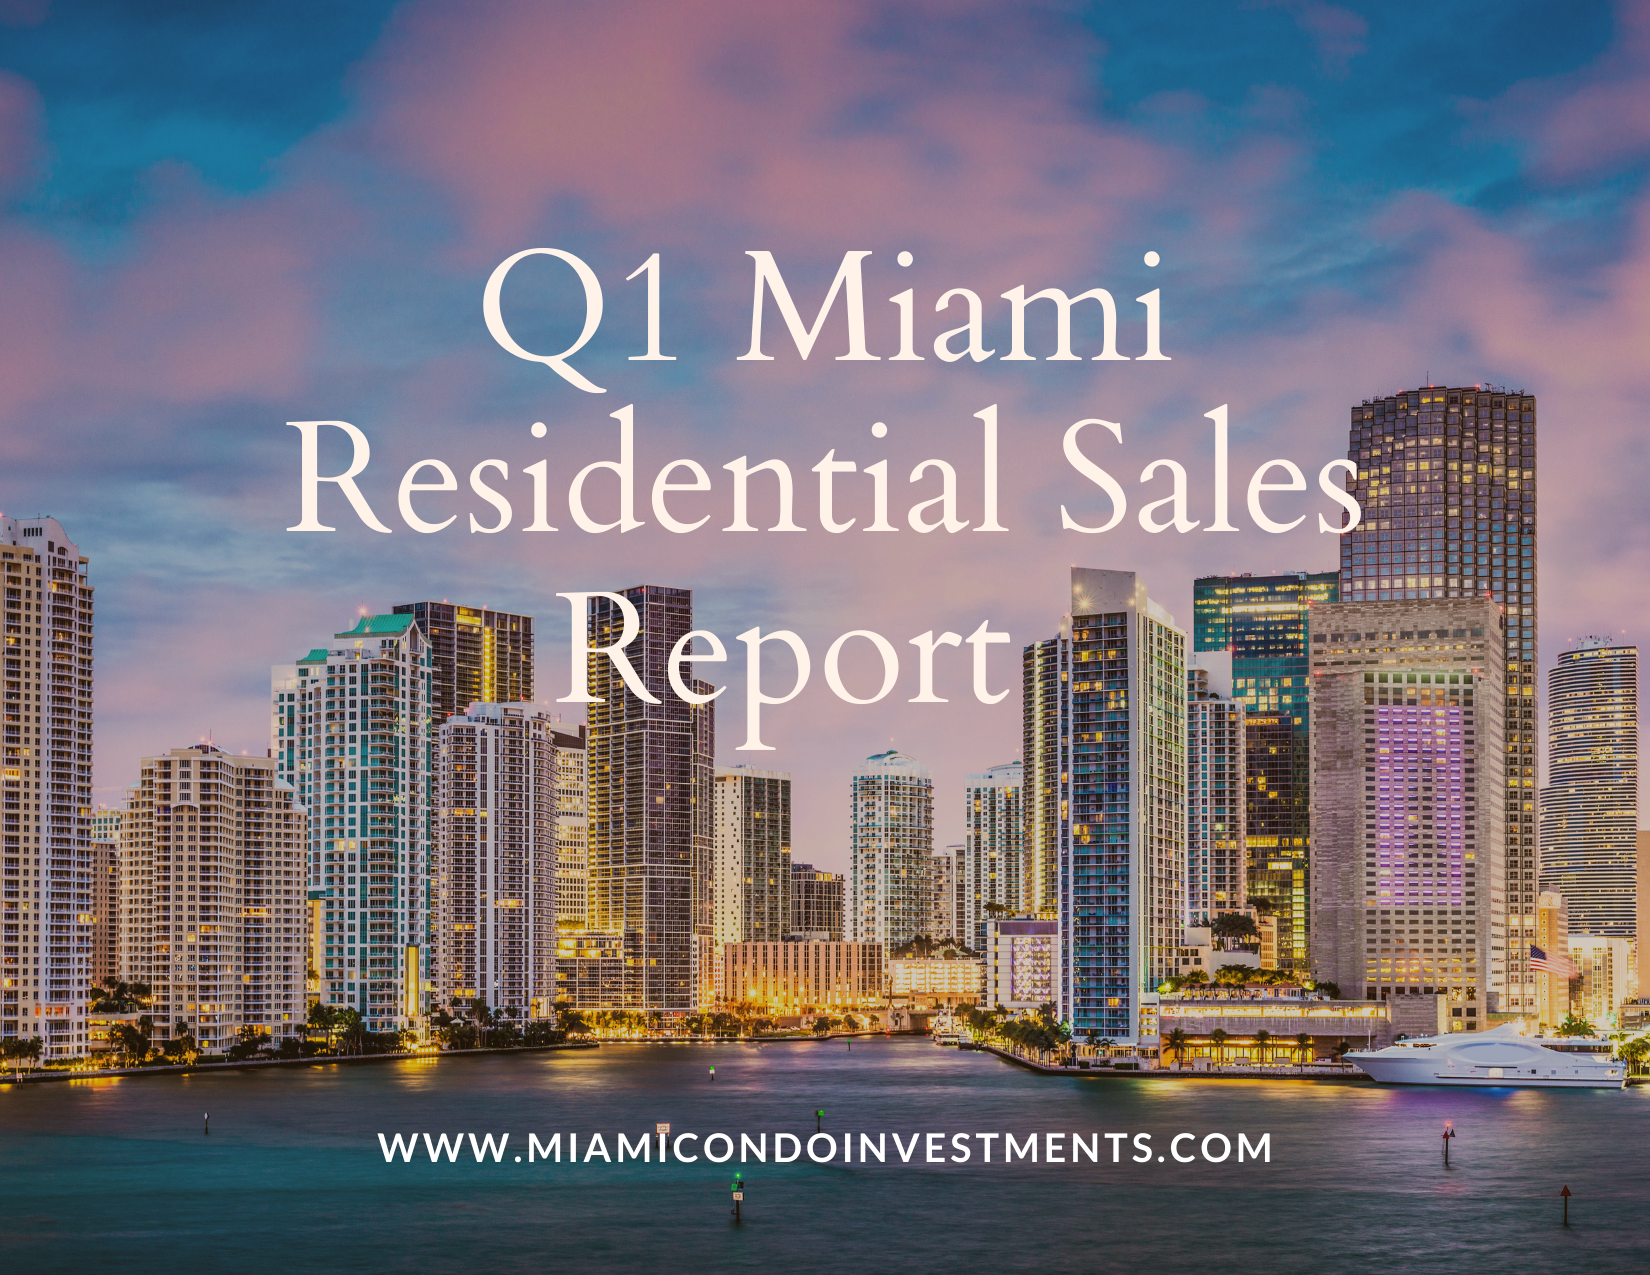 Miami-Dade County Q1 Sales Report by Douglas Elliman